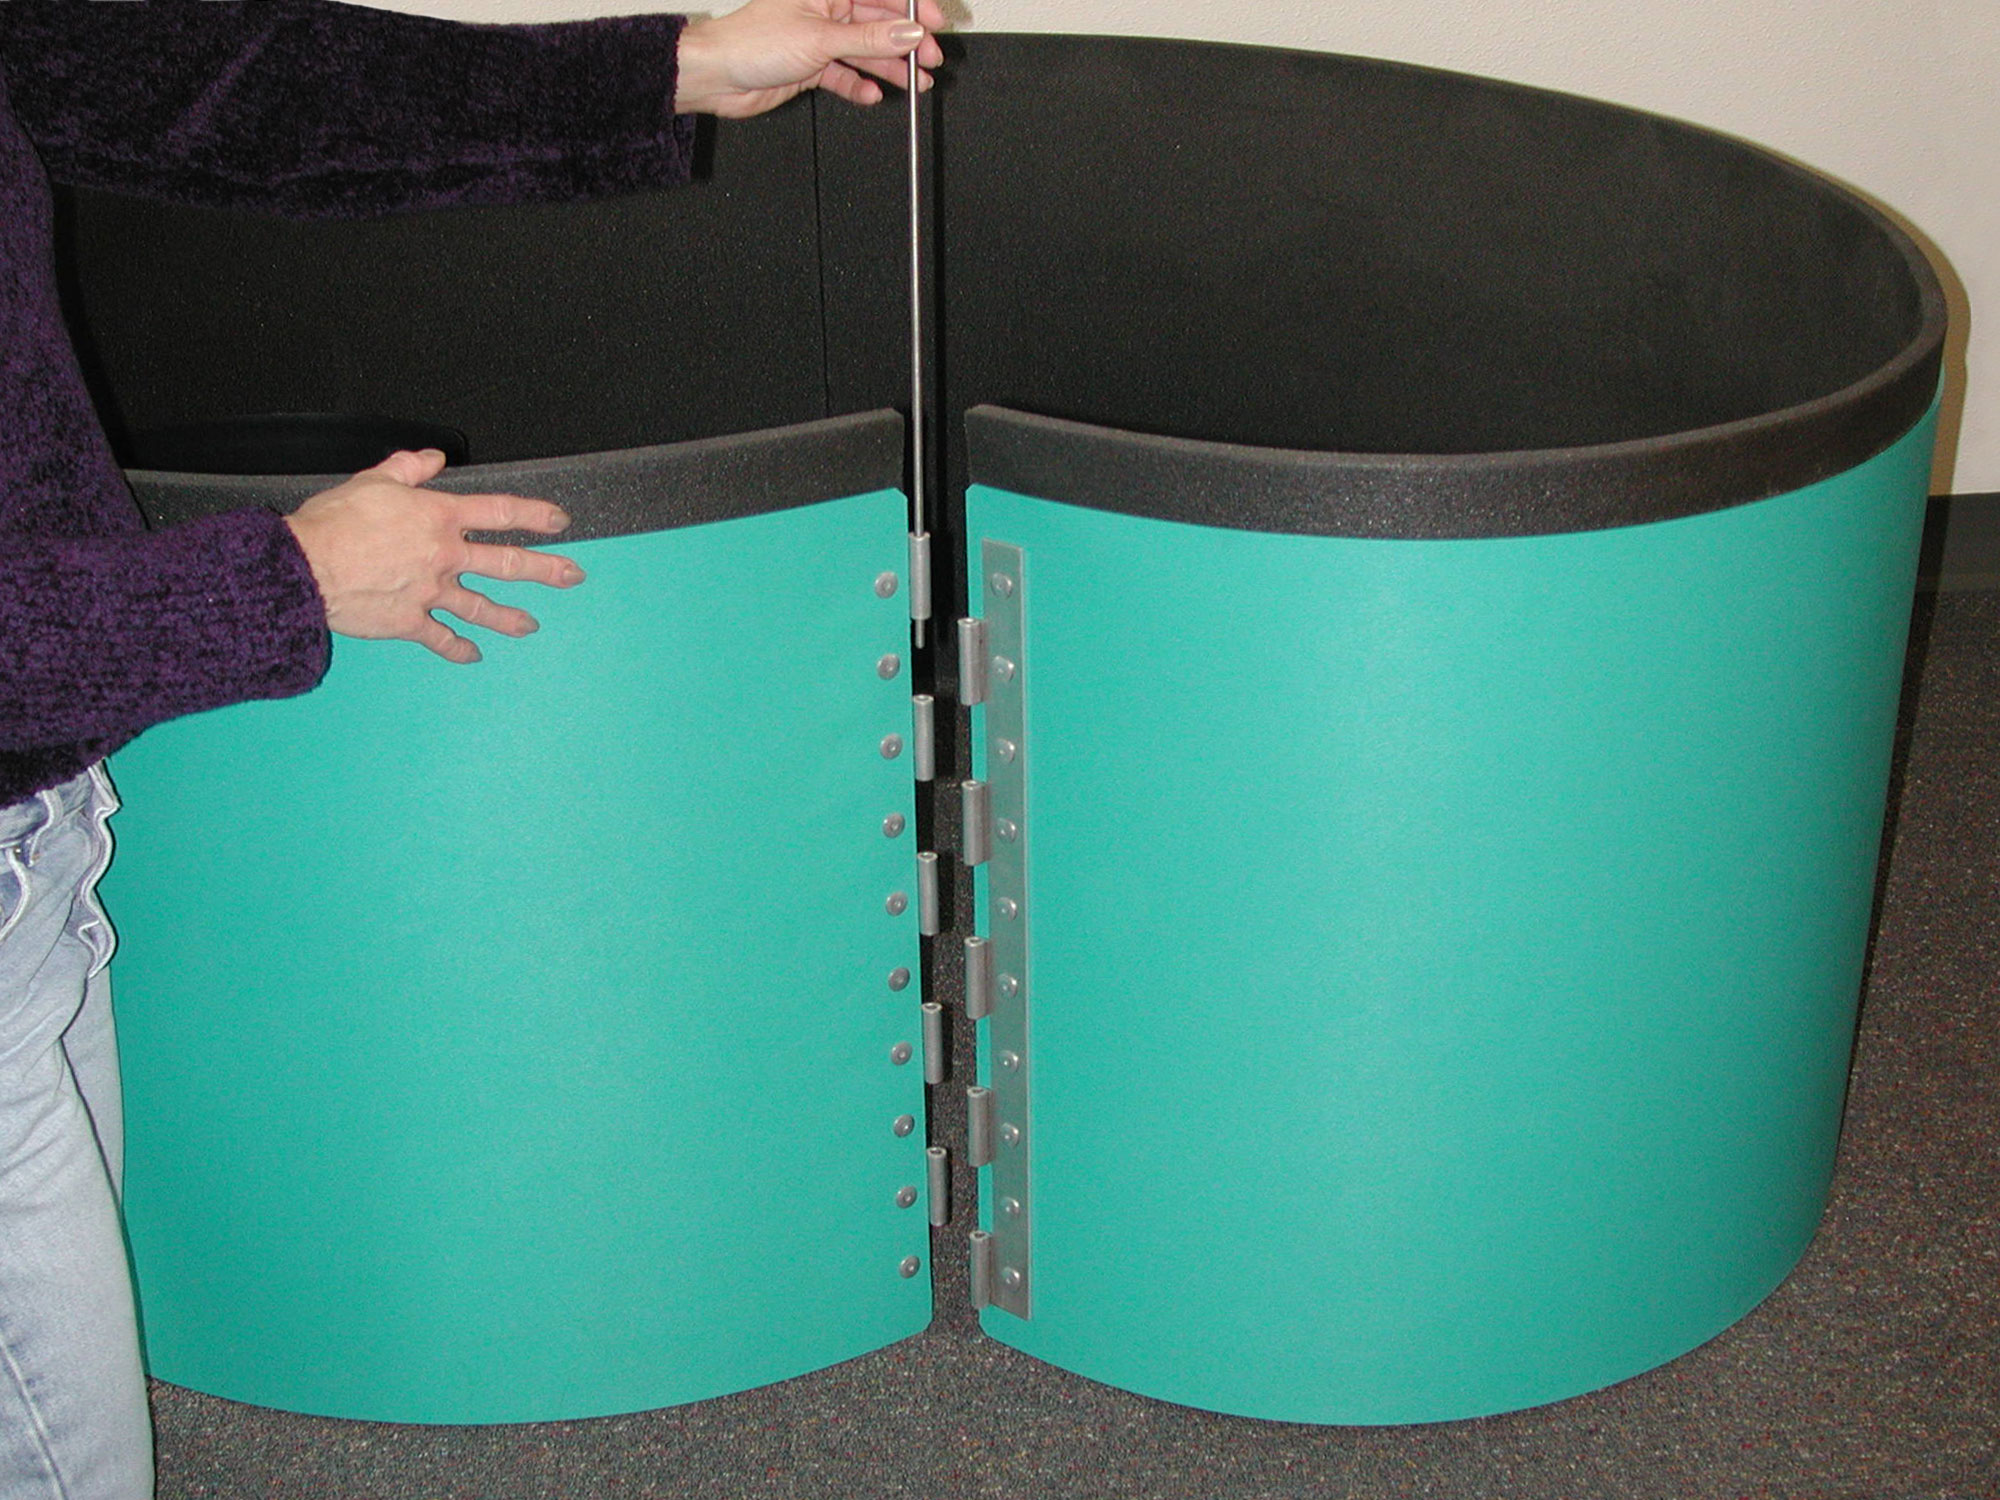 Portable Birth Pools Heated Birthing Tubs Waterbirth